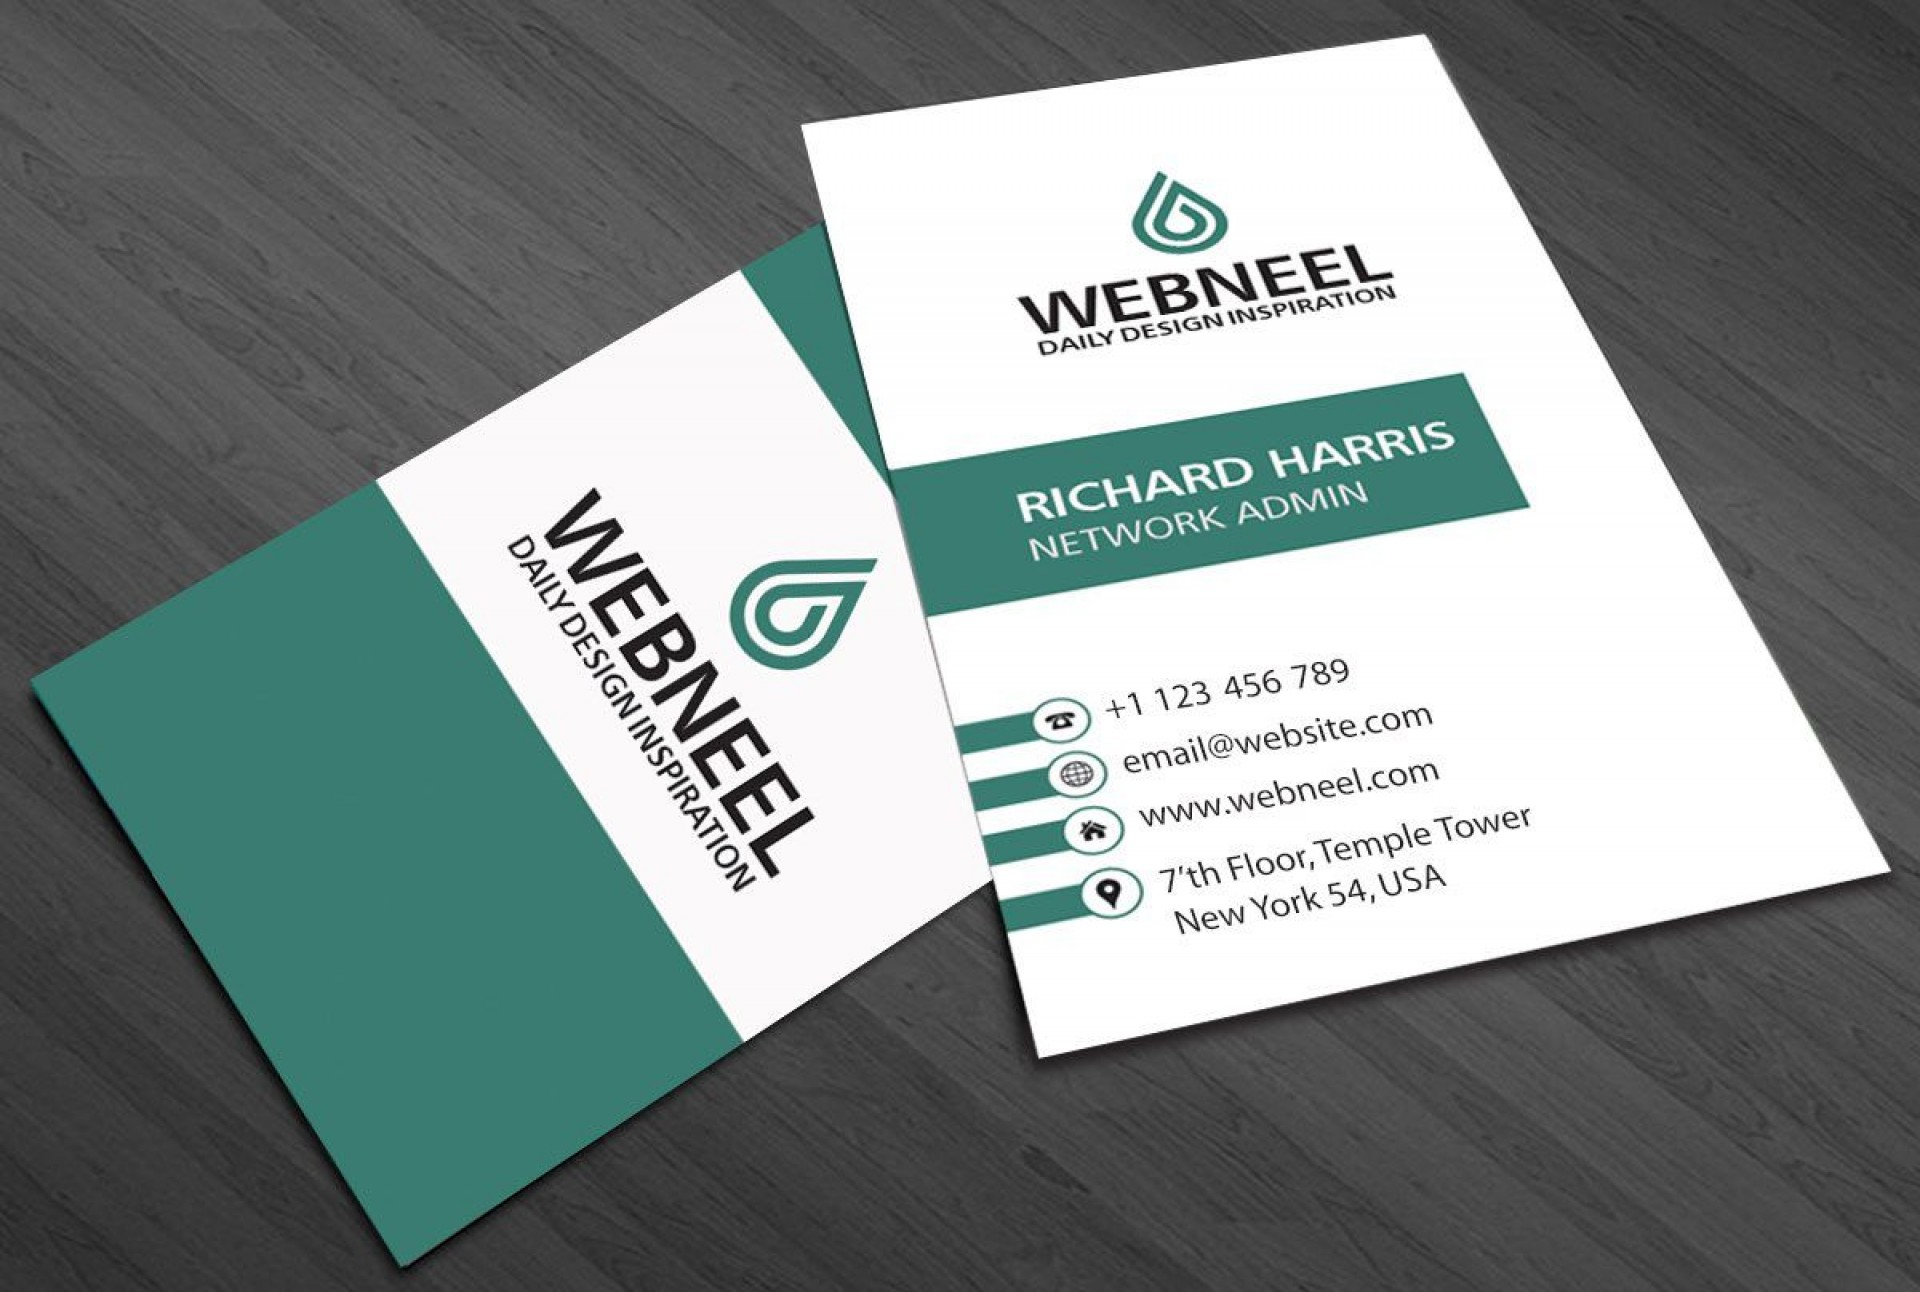 002 Frightening Simple Busines Card Template Free Download Photo  Visiting Design Psd File Minimalist1920